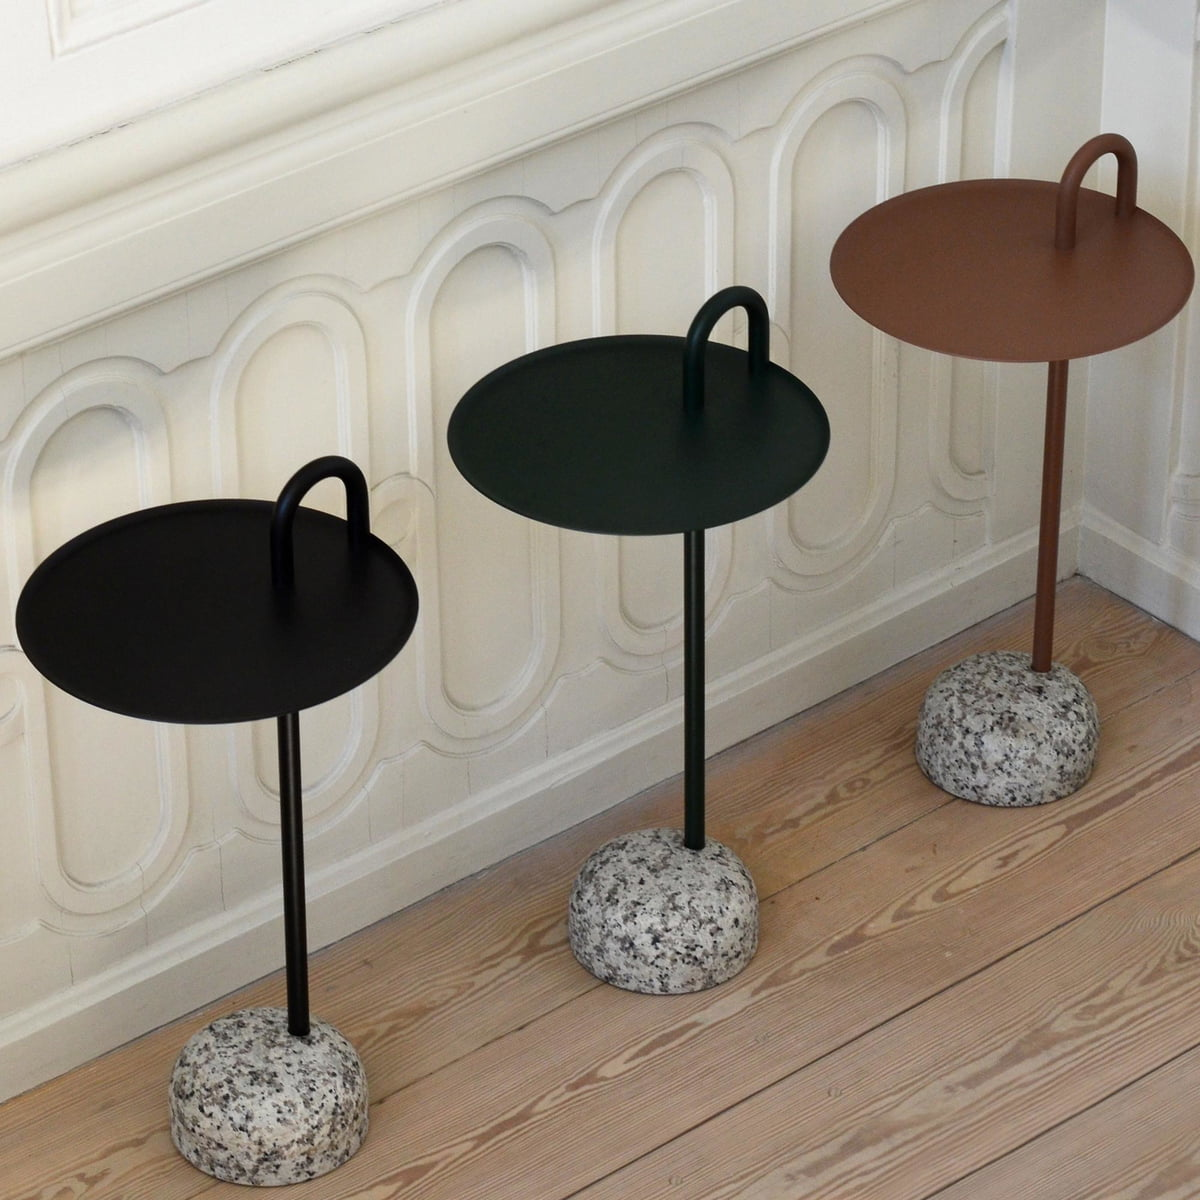 Hay Bowler Side Table.Hay Bowler Side Table O 36 Cm H 70 5 Cm Black